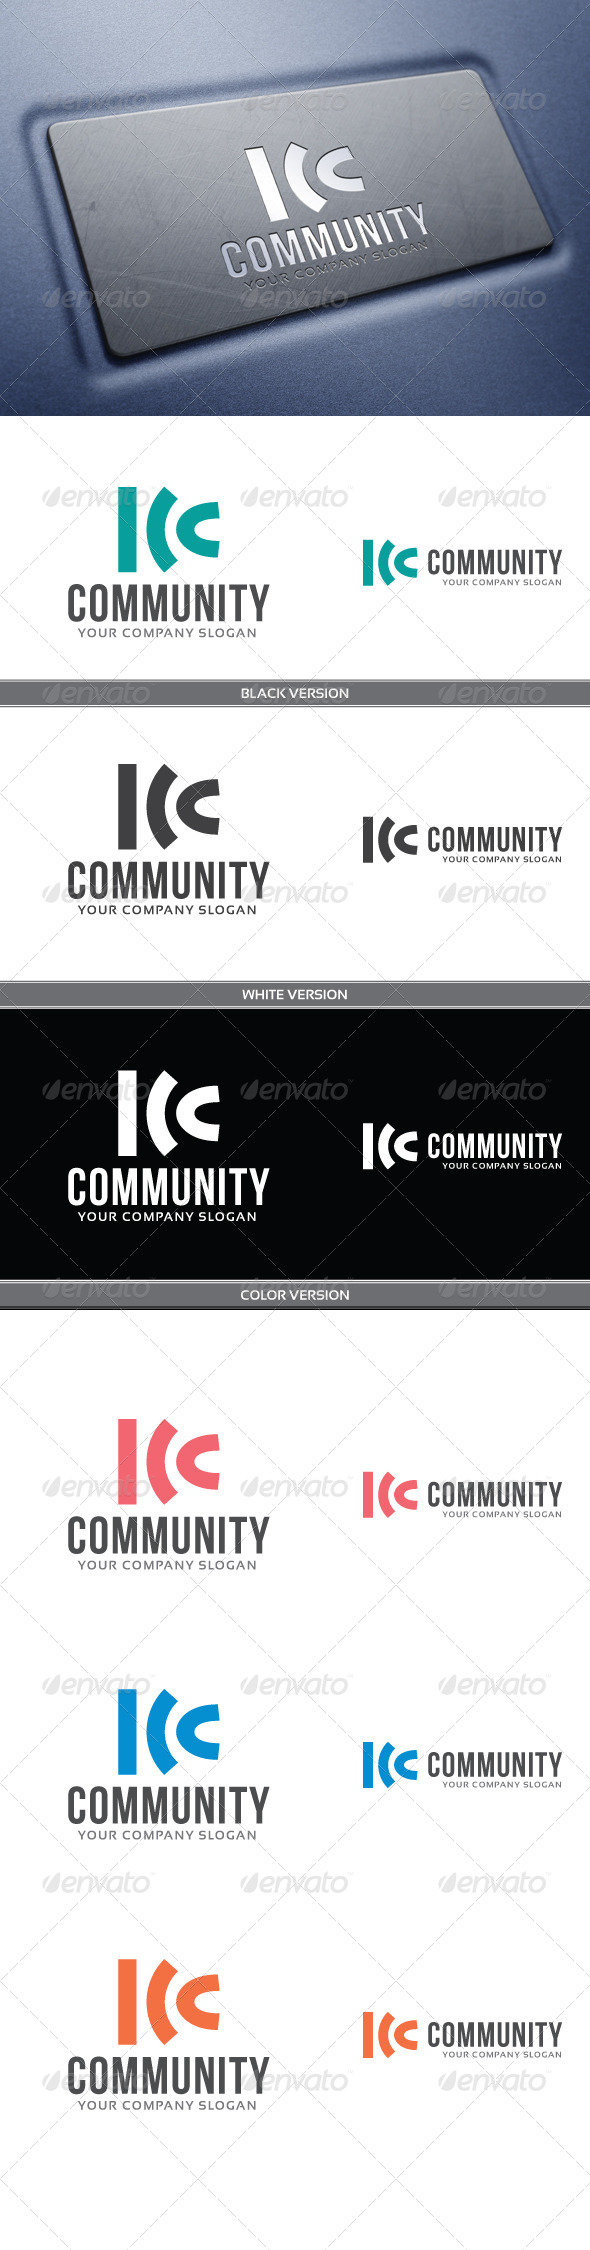 GraphicRiver Community 4065808